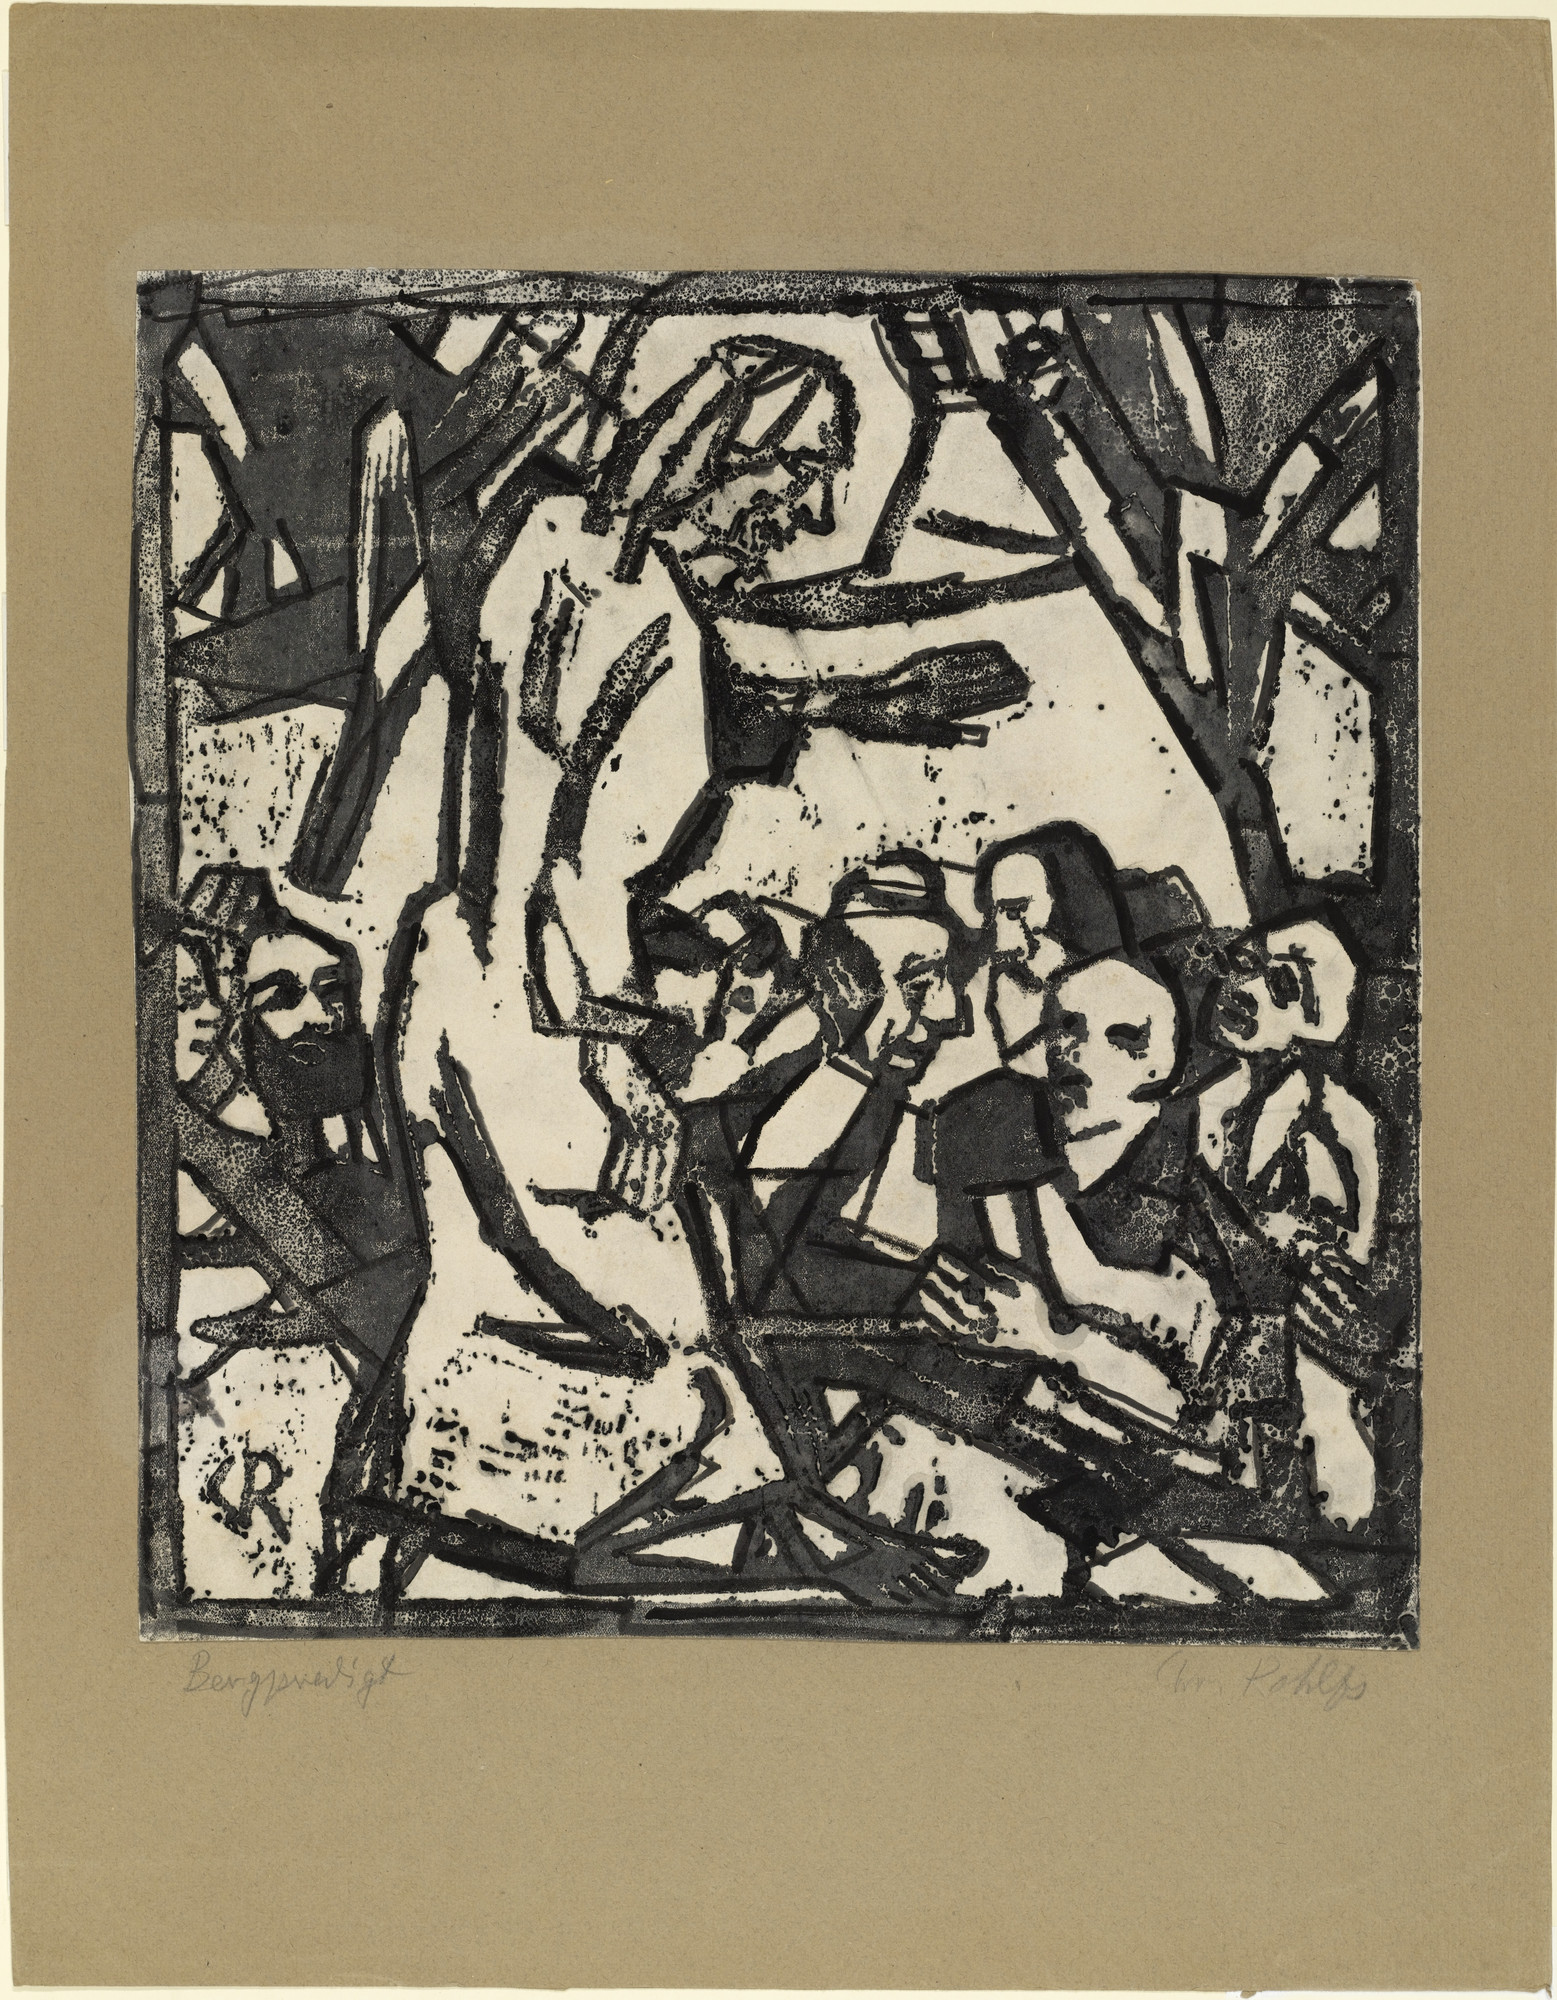 Christian Rohlfs. Sermon on the Mount (Bergpredigt). (1916)